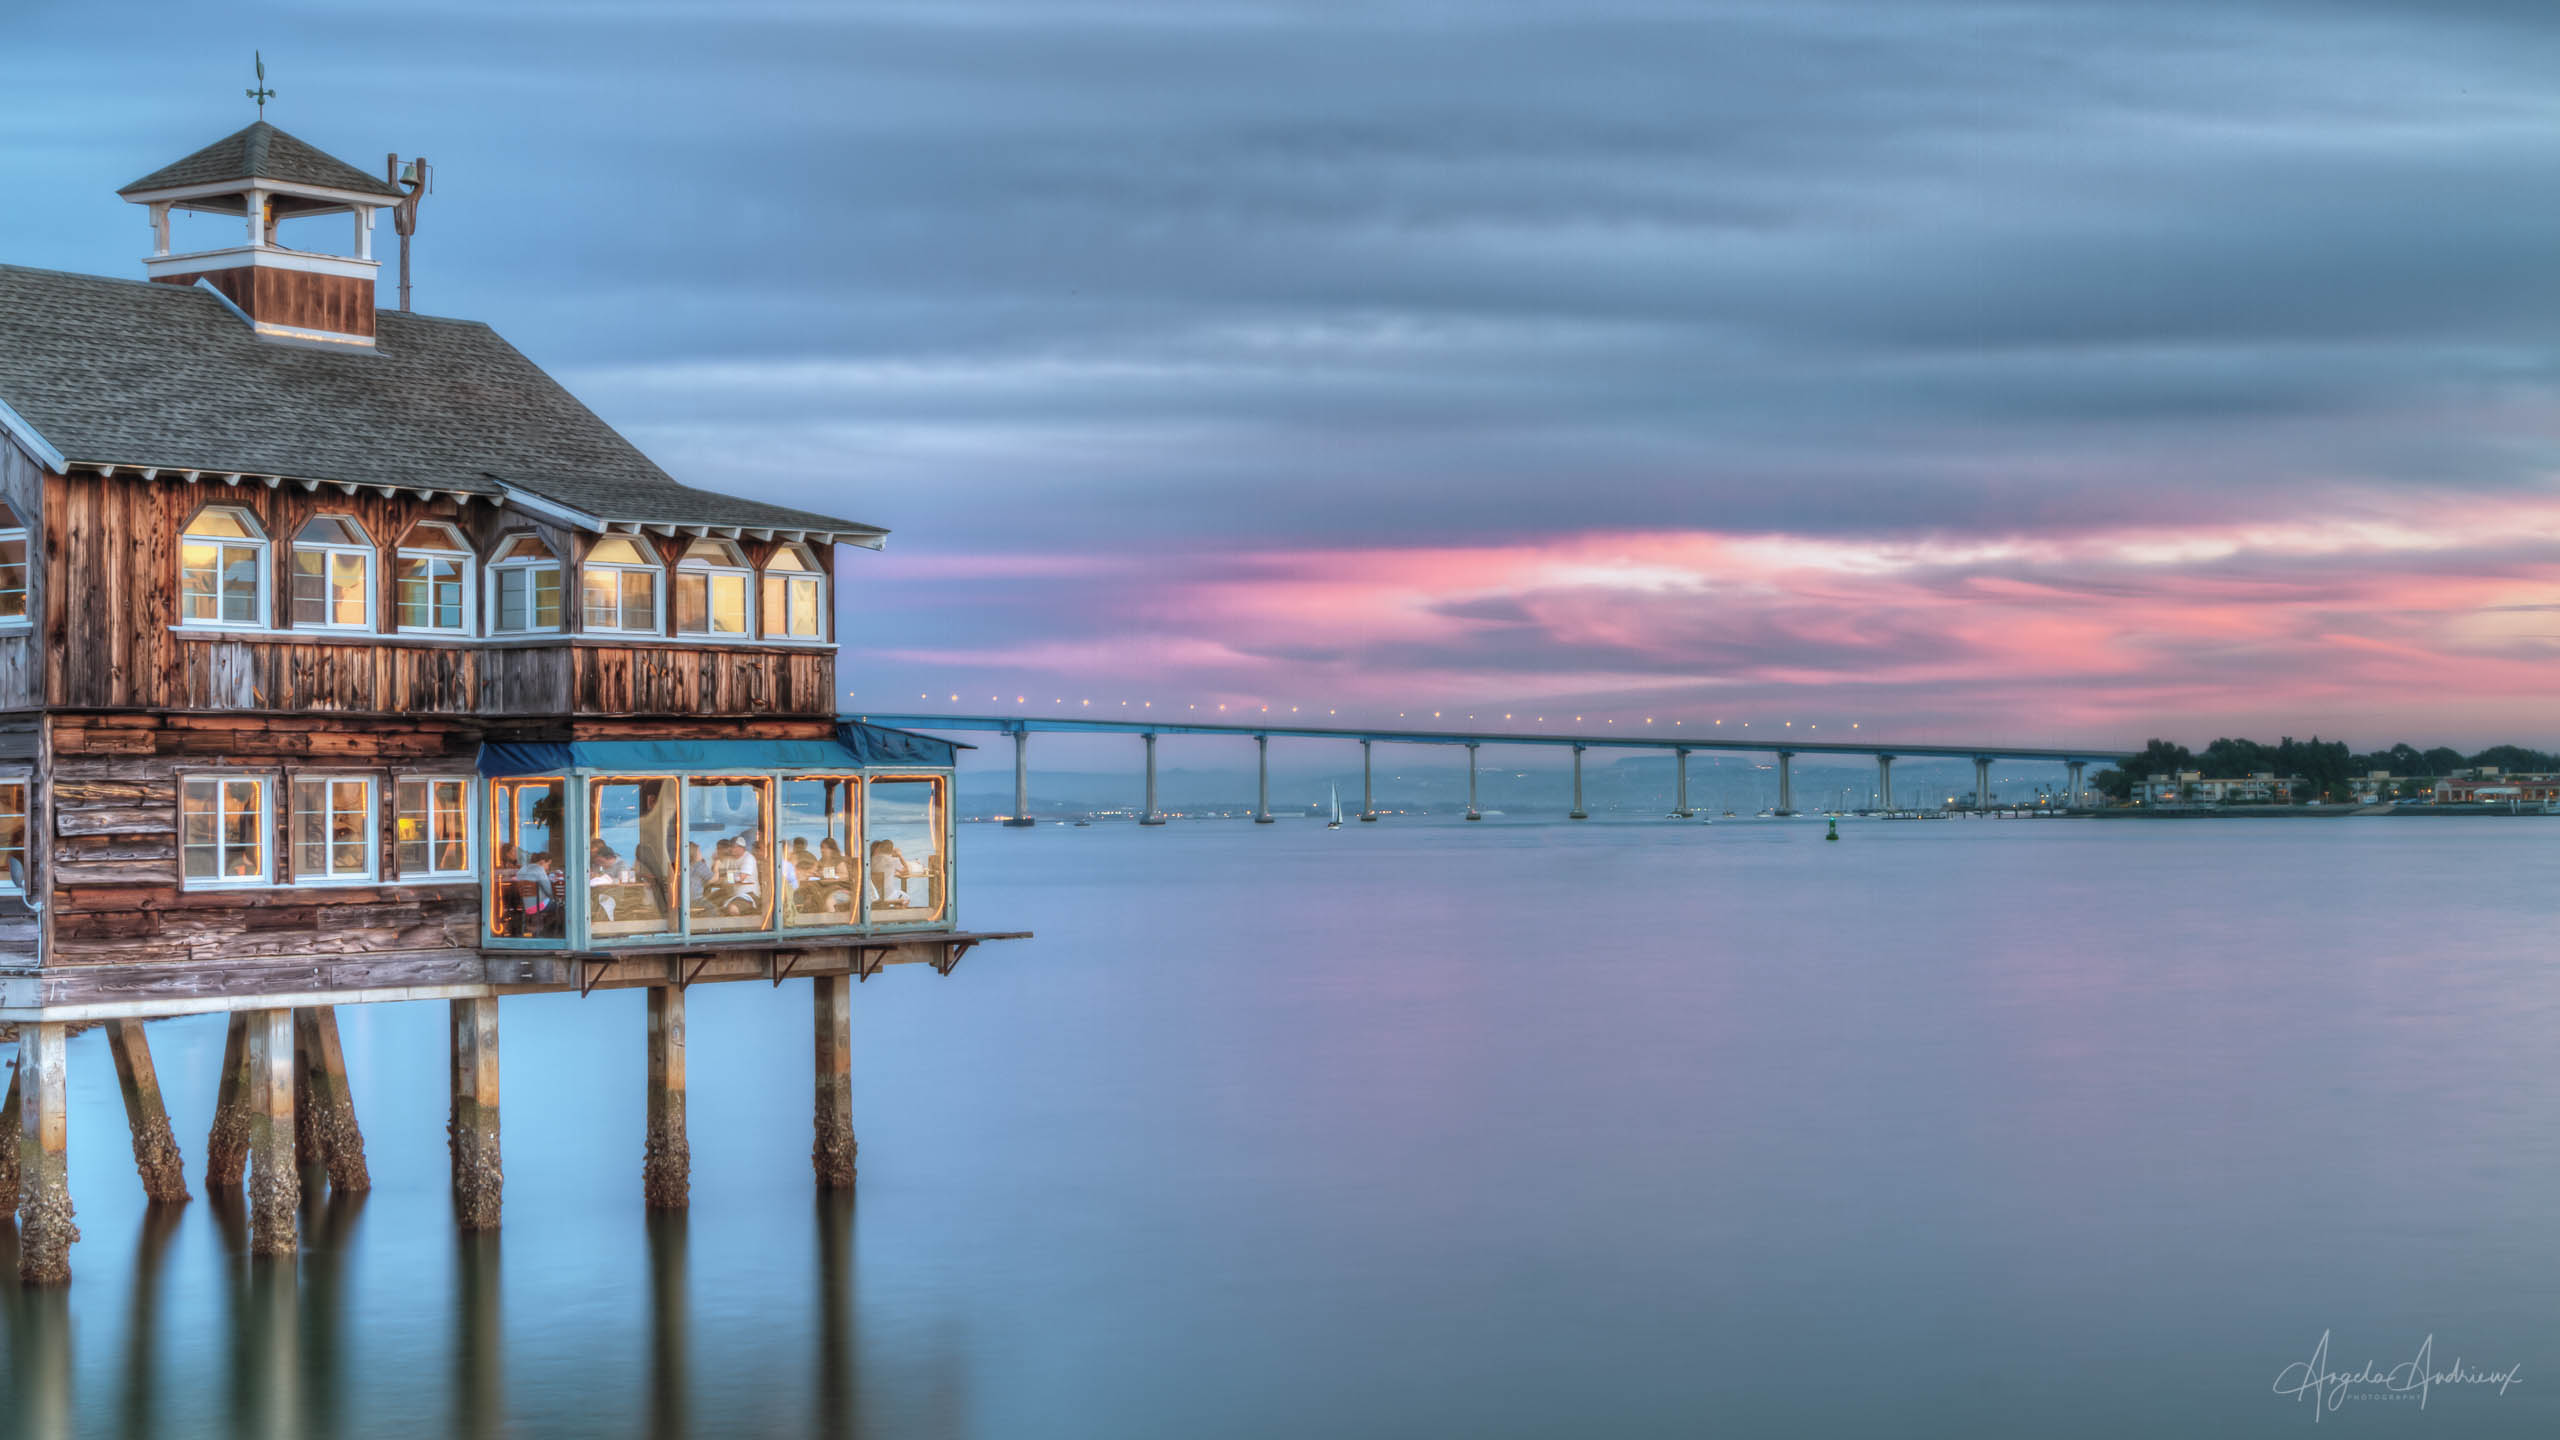 How to photograph for HDR in five simple steps